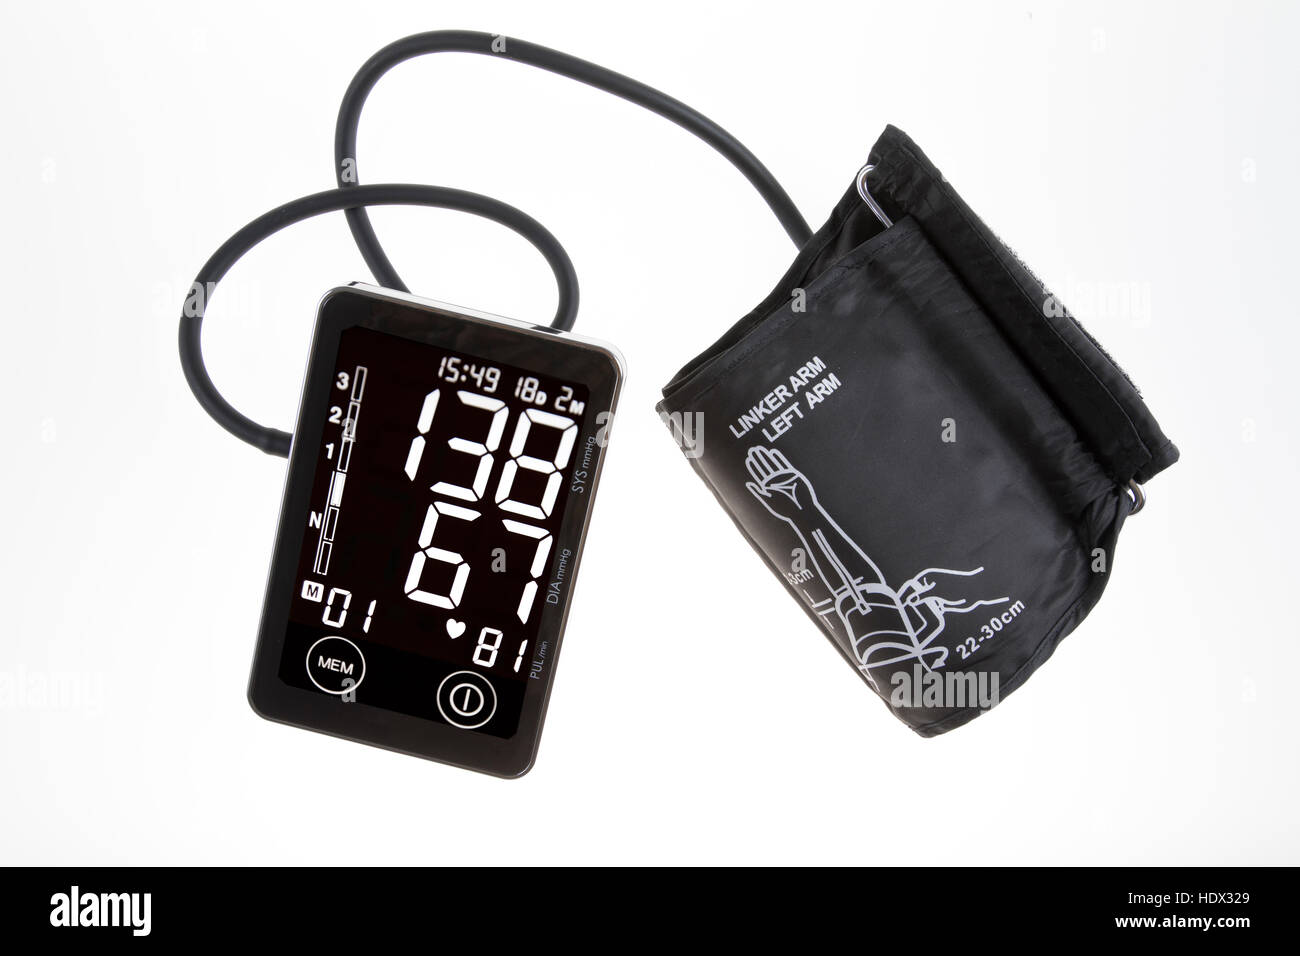 Arm With Sphygmomanometer Stock Photos & Arm With Sphygmomanometer ...